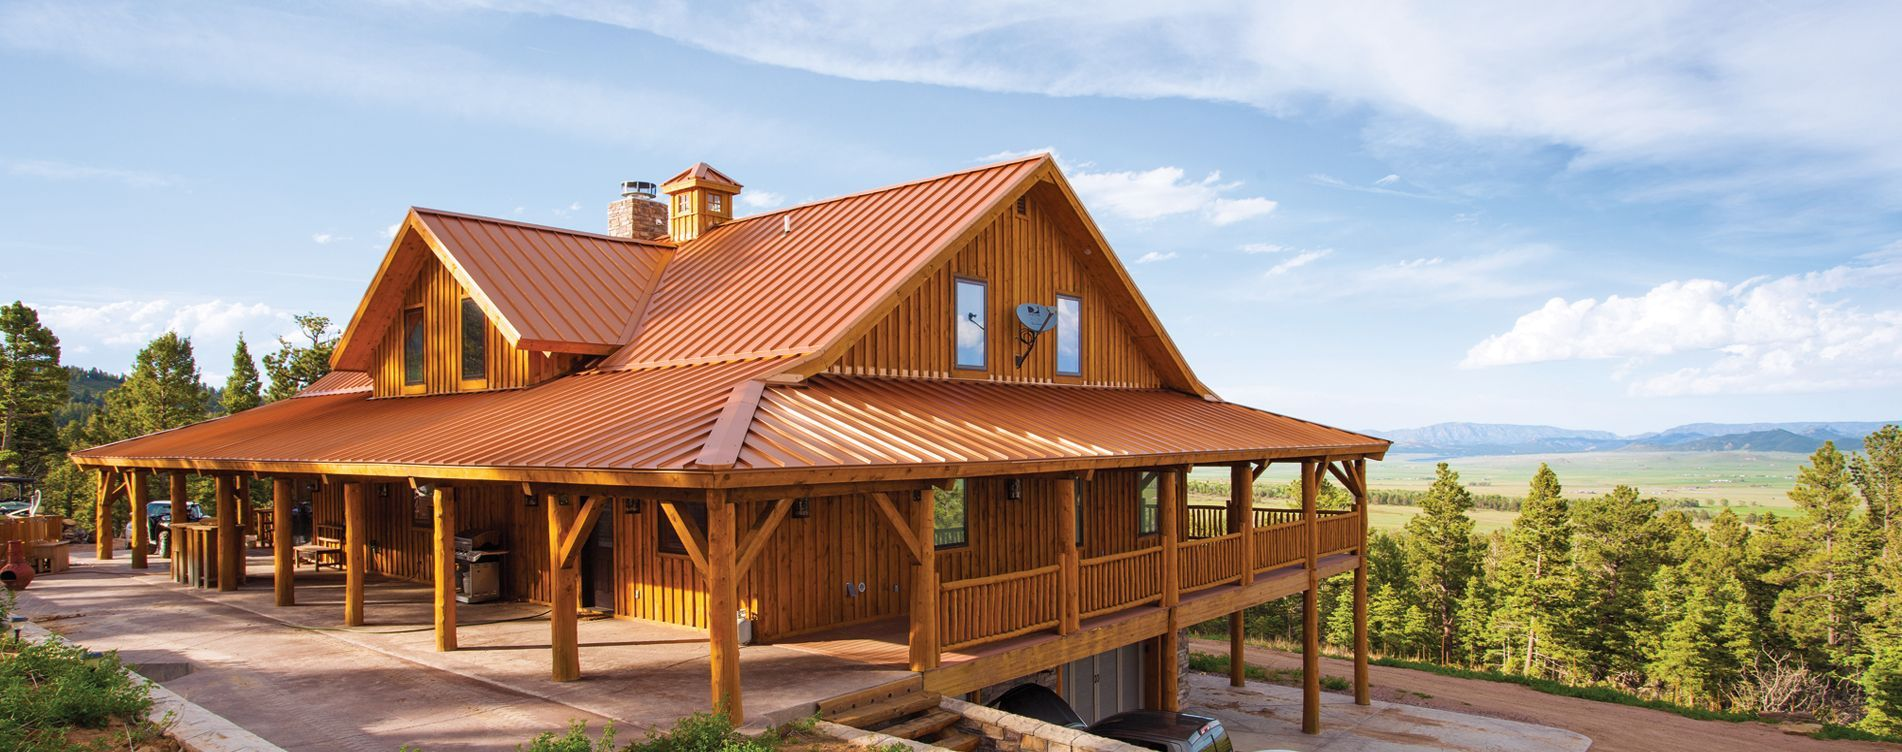 Pre Designed Wood Barn Home Ponderosa Country Barn Home 2 845 Sq Ft By Sand Creek Post Beam With Images Barn House Barn Style House House In The Woods